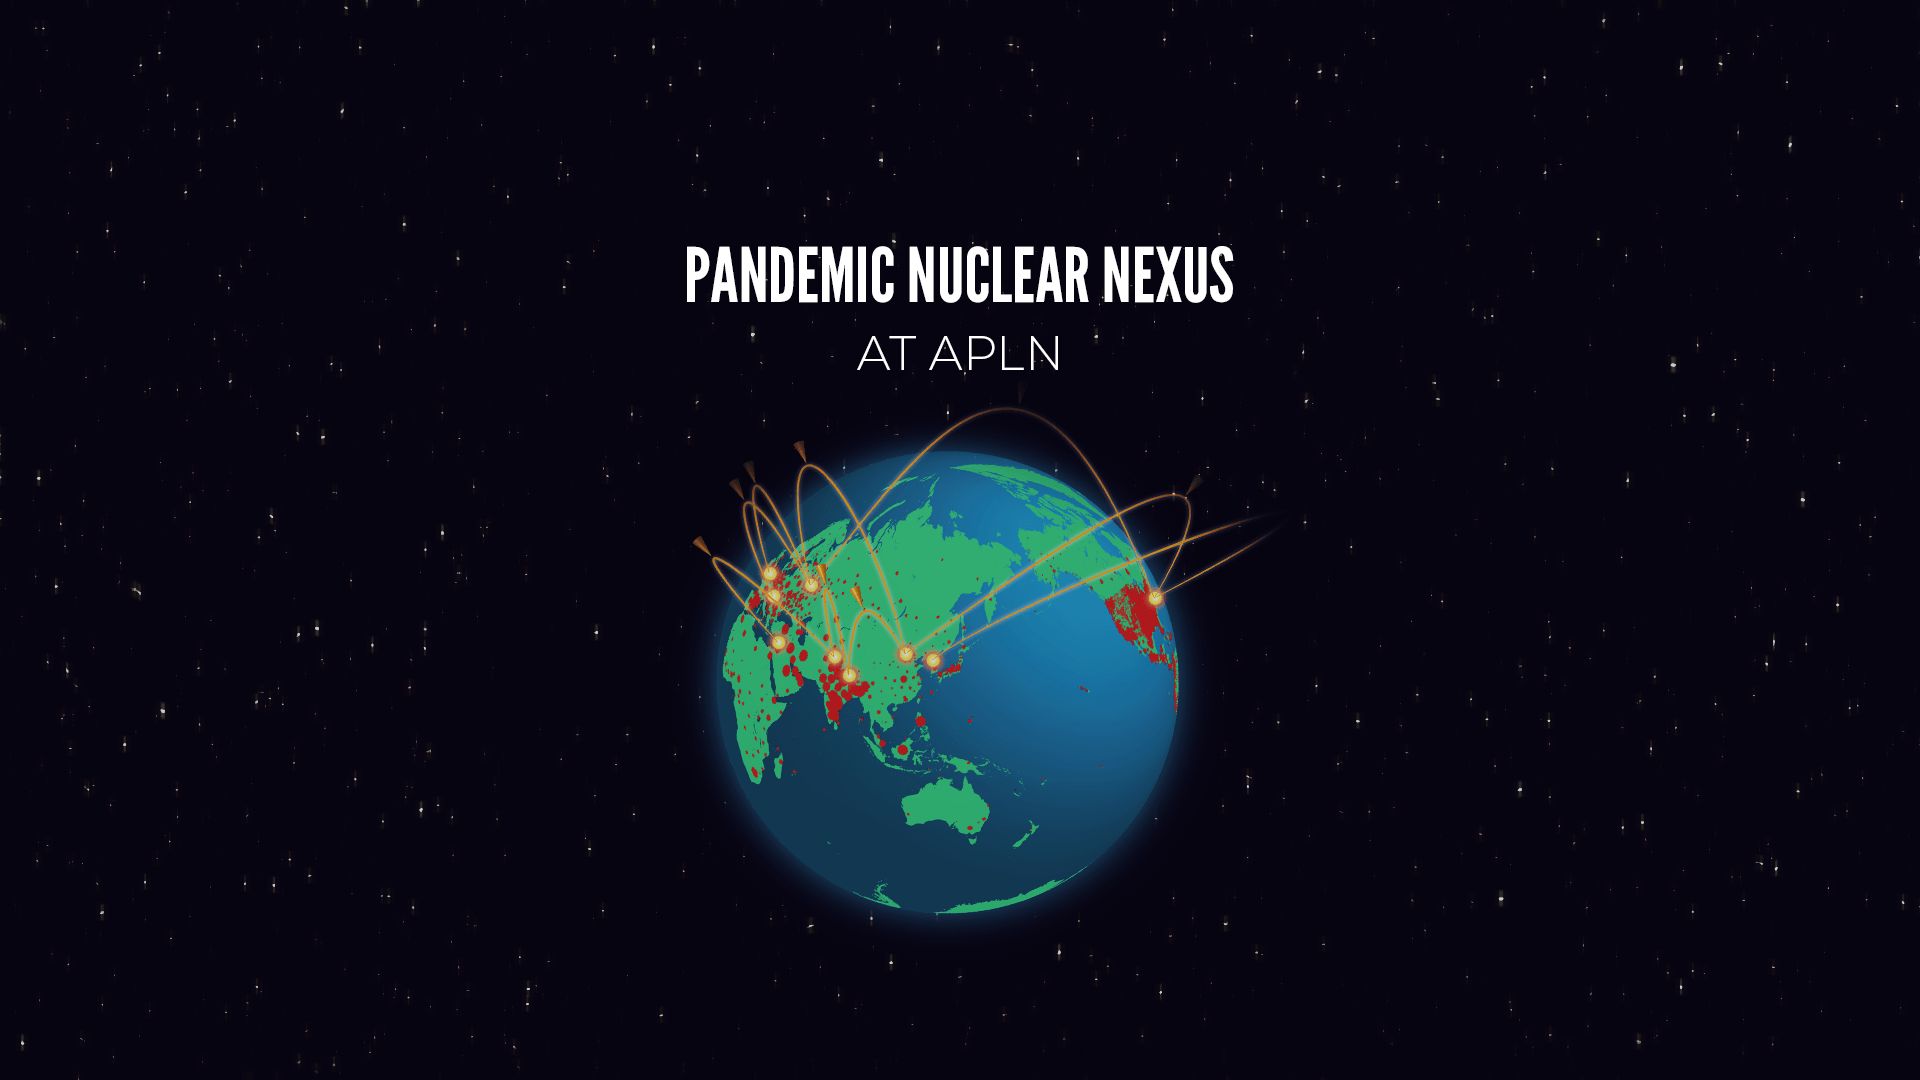 What is the Pandemic-Nuclear-Nexus Scenarios Project?